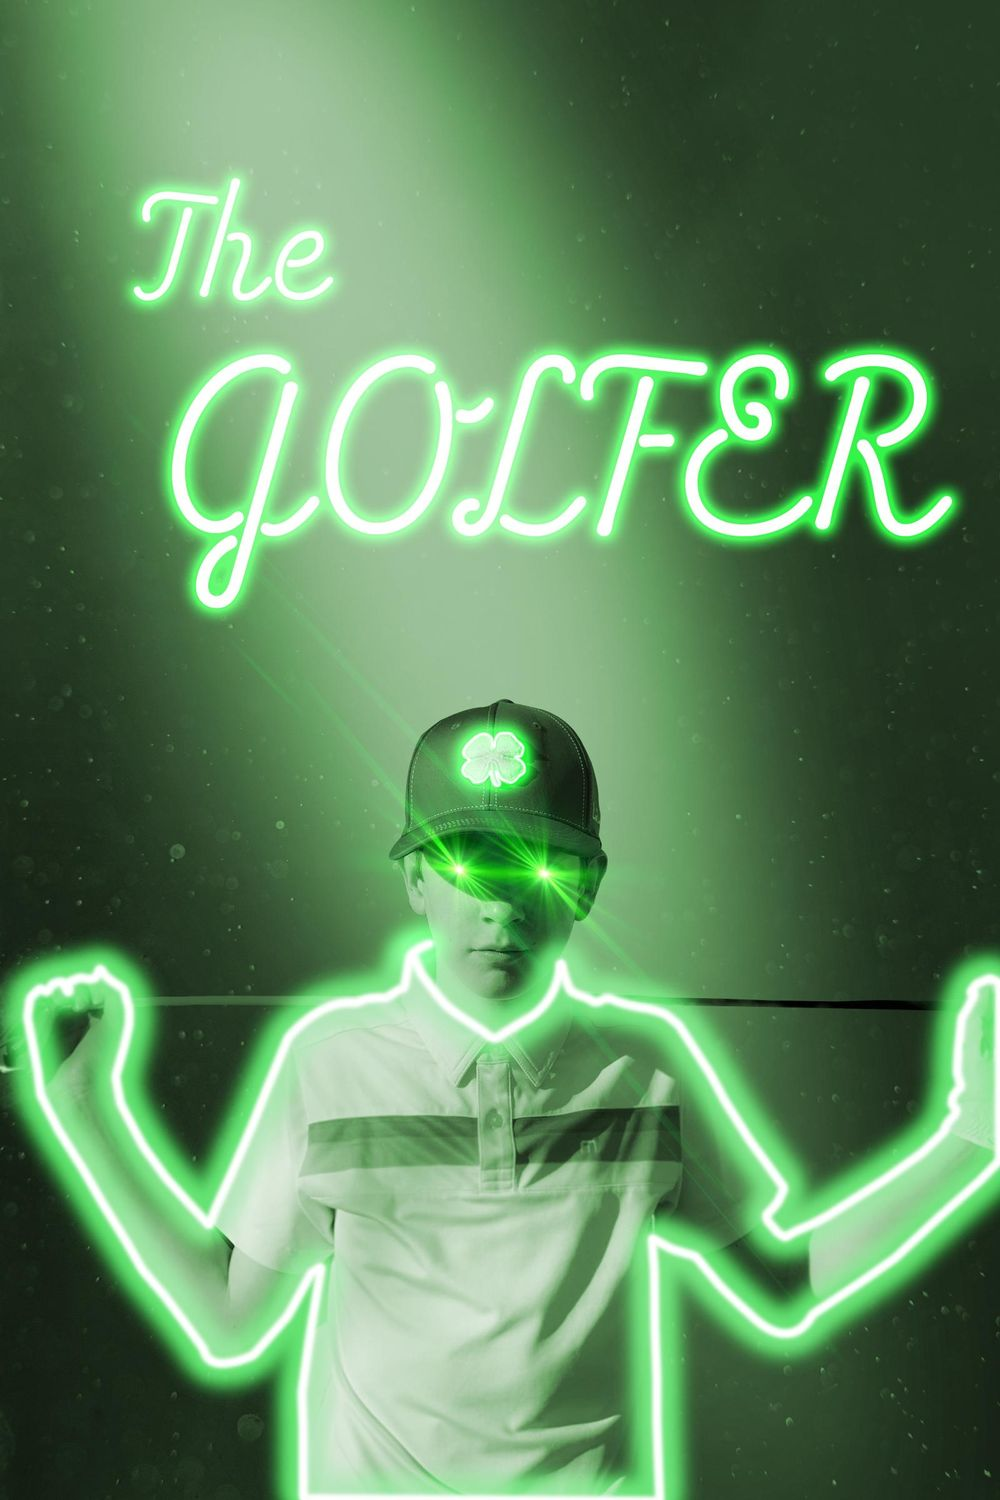 The Golfer - image 1 - student project